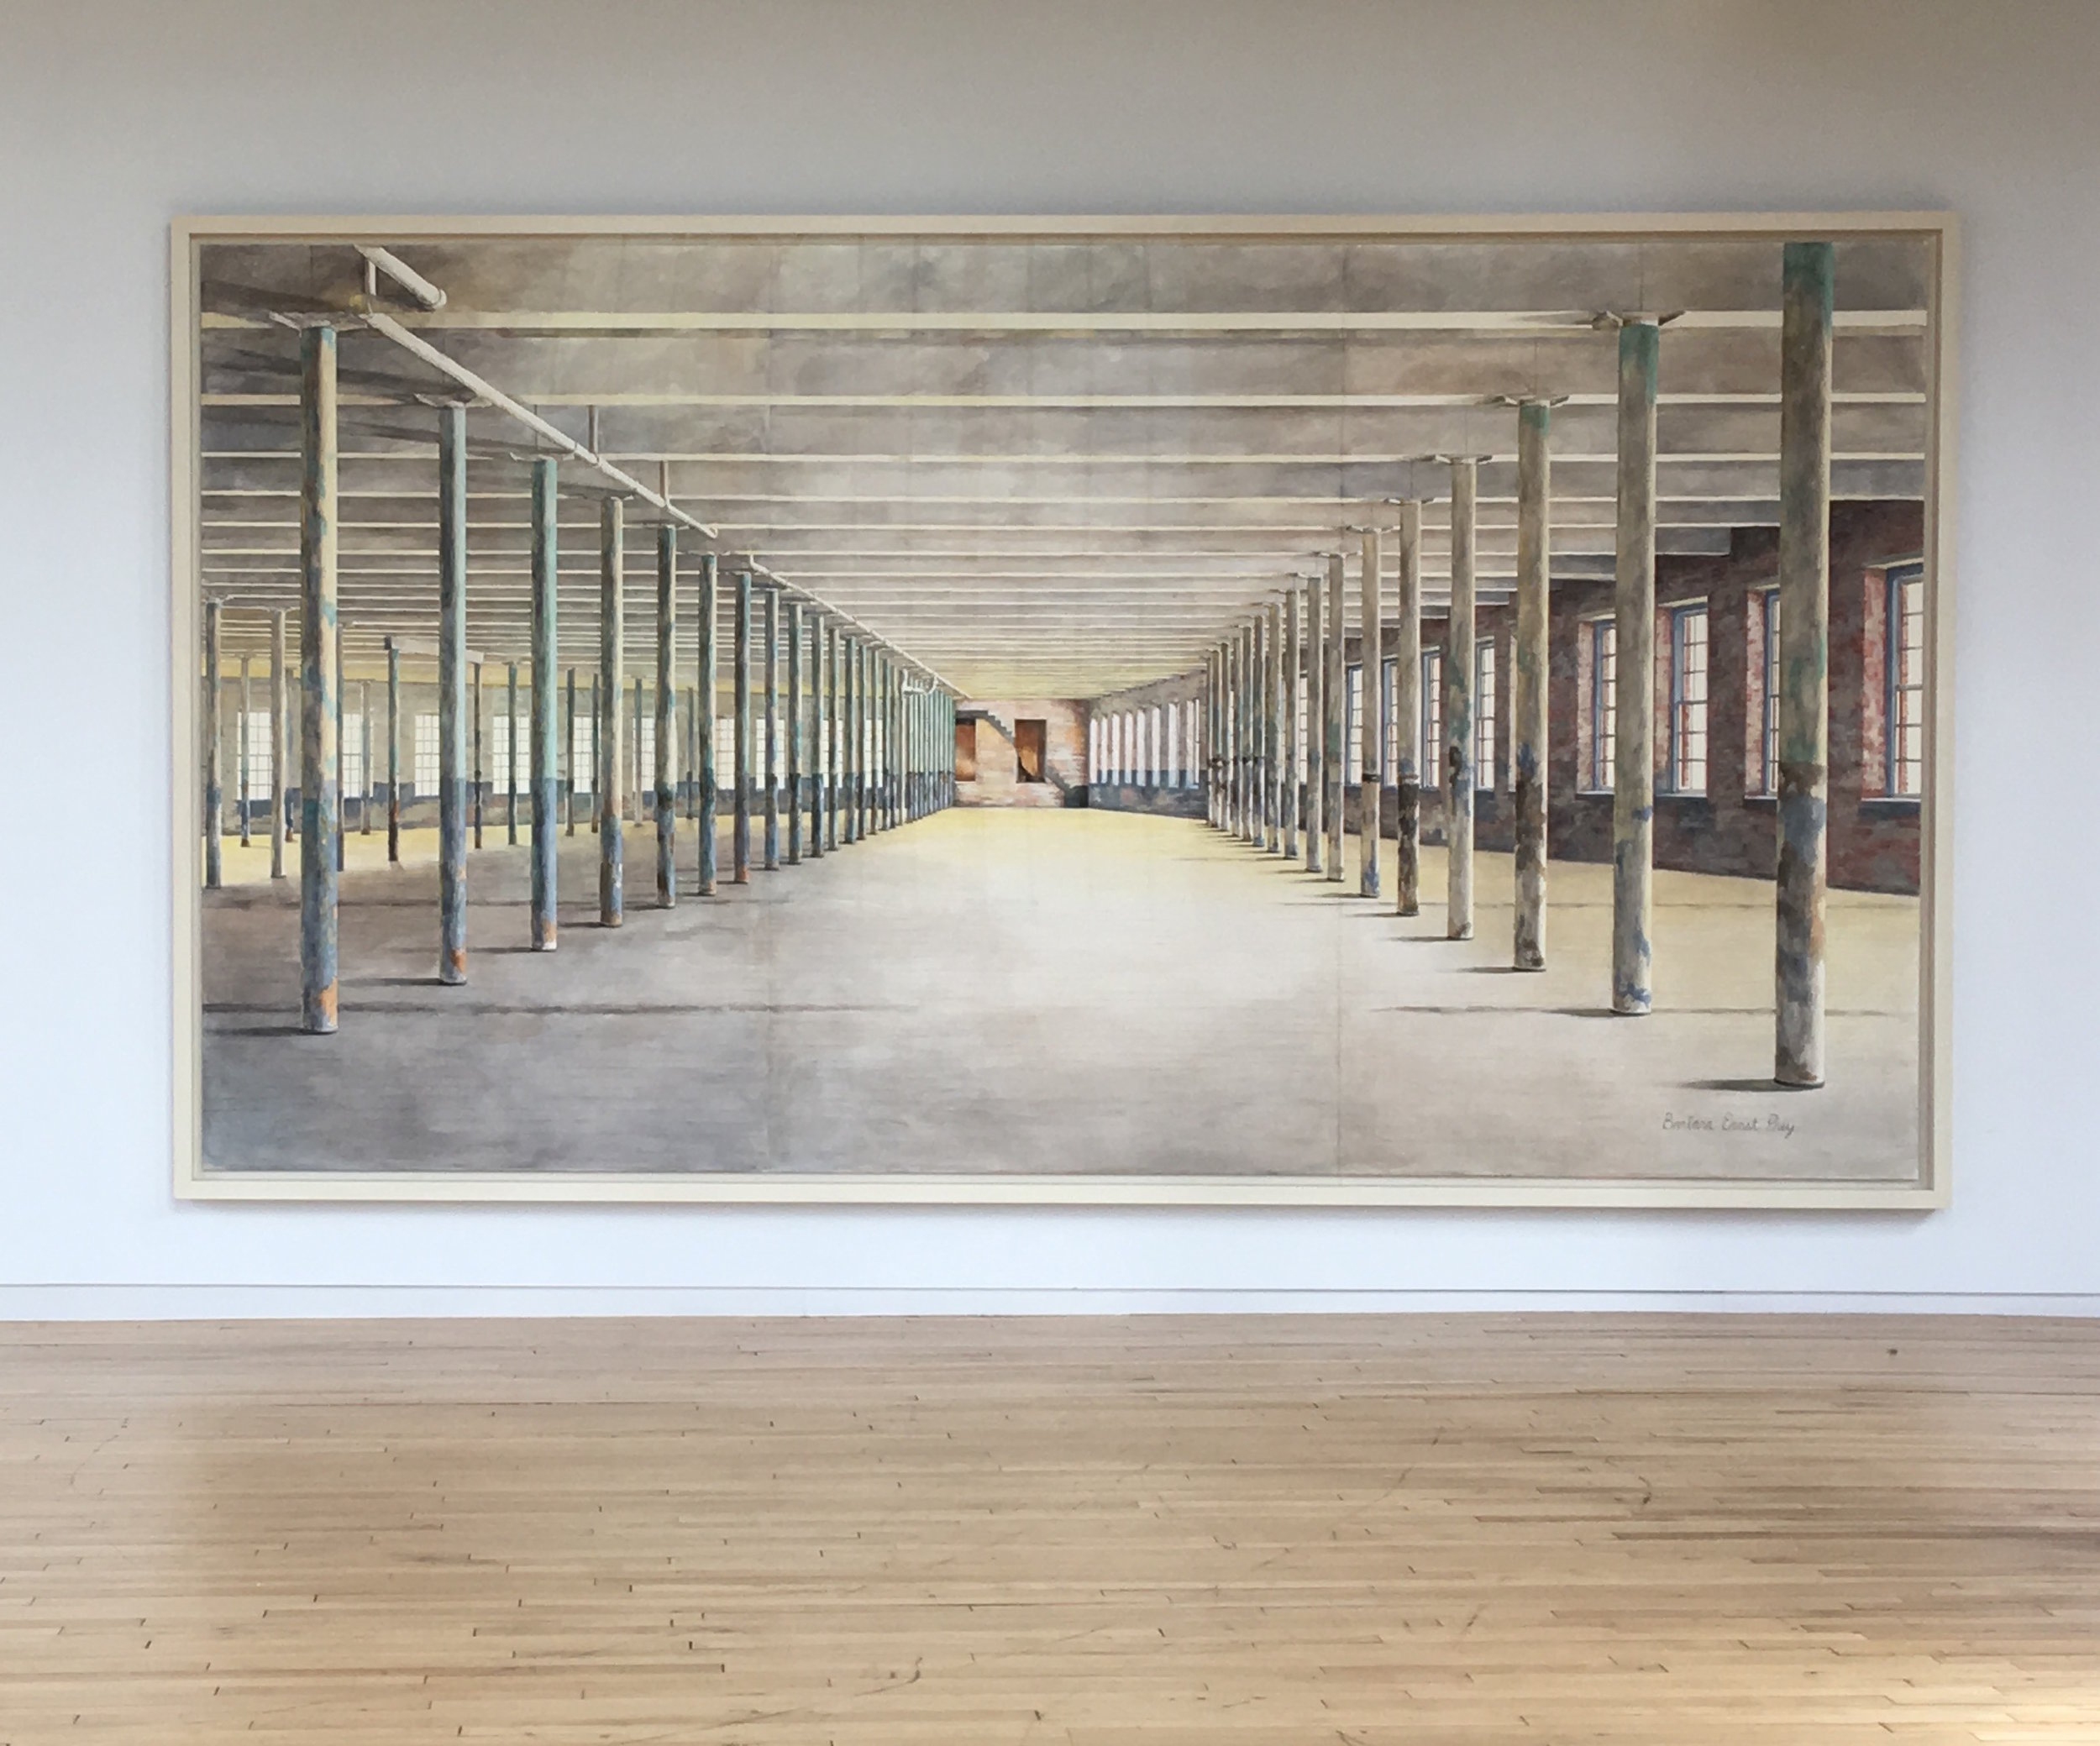 (composition evolution sequence 8 of 8) Barbara Prey MASS MoCA commission.jpg